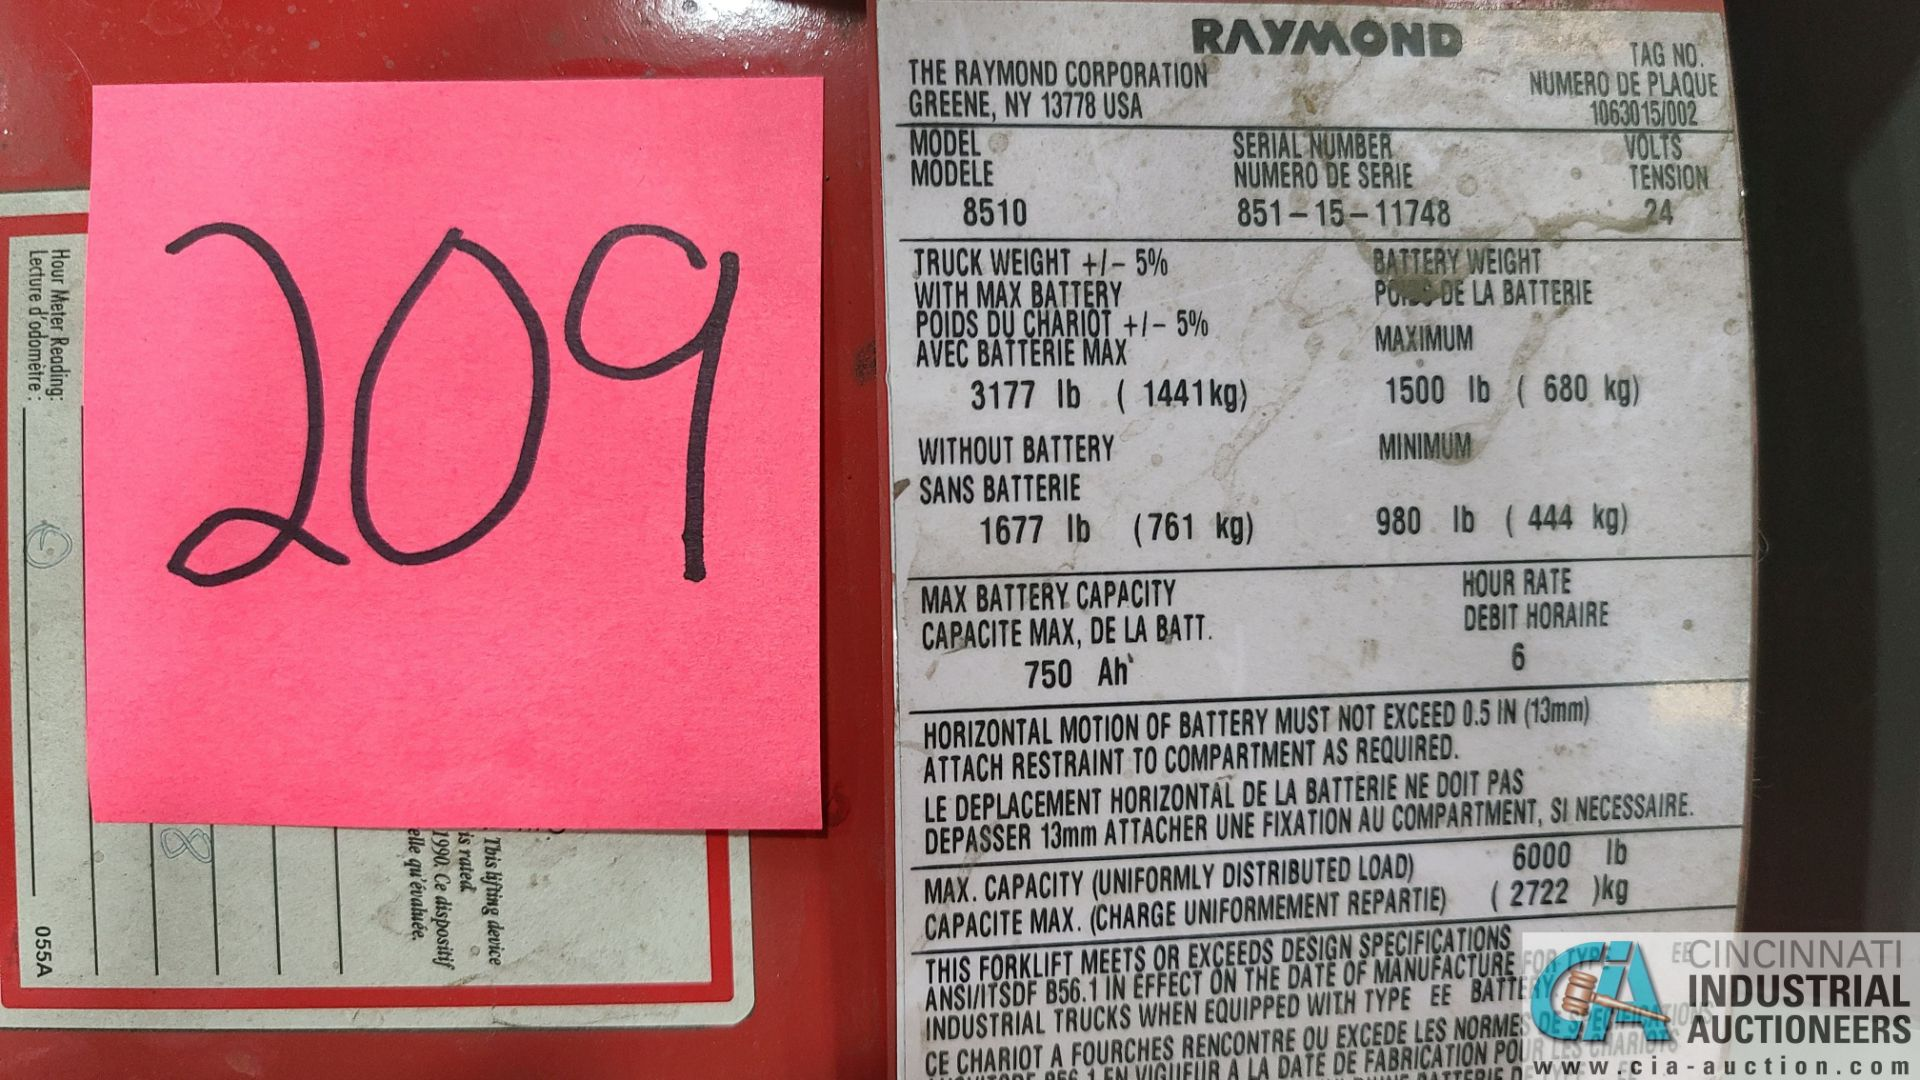 RAYMOND MODEL 8510 ELECTRIC PALLET TRUCK; S/N 851-15-11748, W/ BATTERY, HOURS N/A (NEW 2015) (2570 - Image 4 of 4